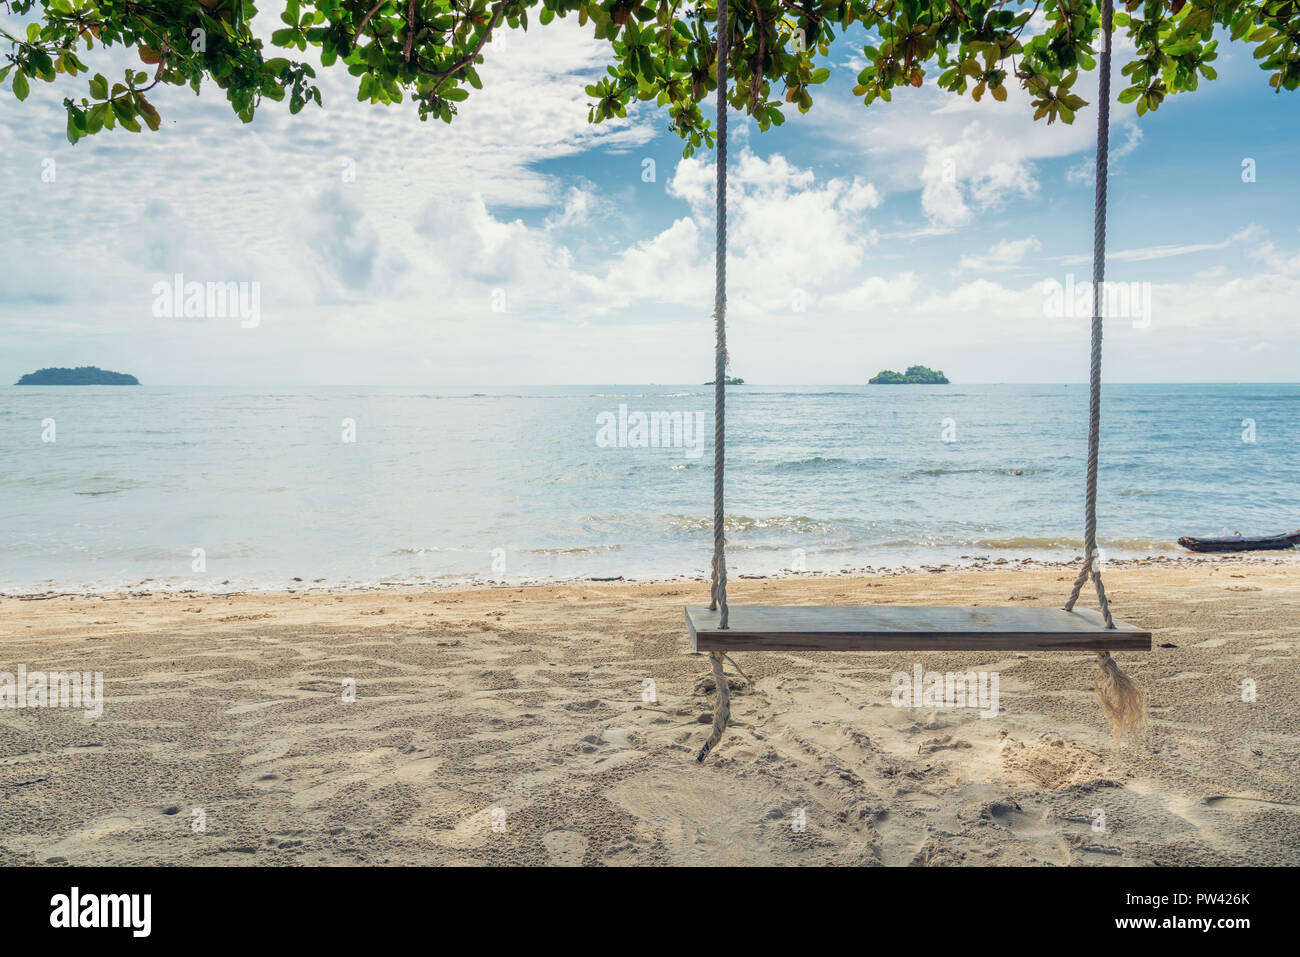 Wooden swing chair hanging on tree near beach at island in Phuket, Thailand. Summer Vacation Travel and Holiday concept. - Stock Image